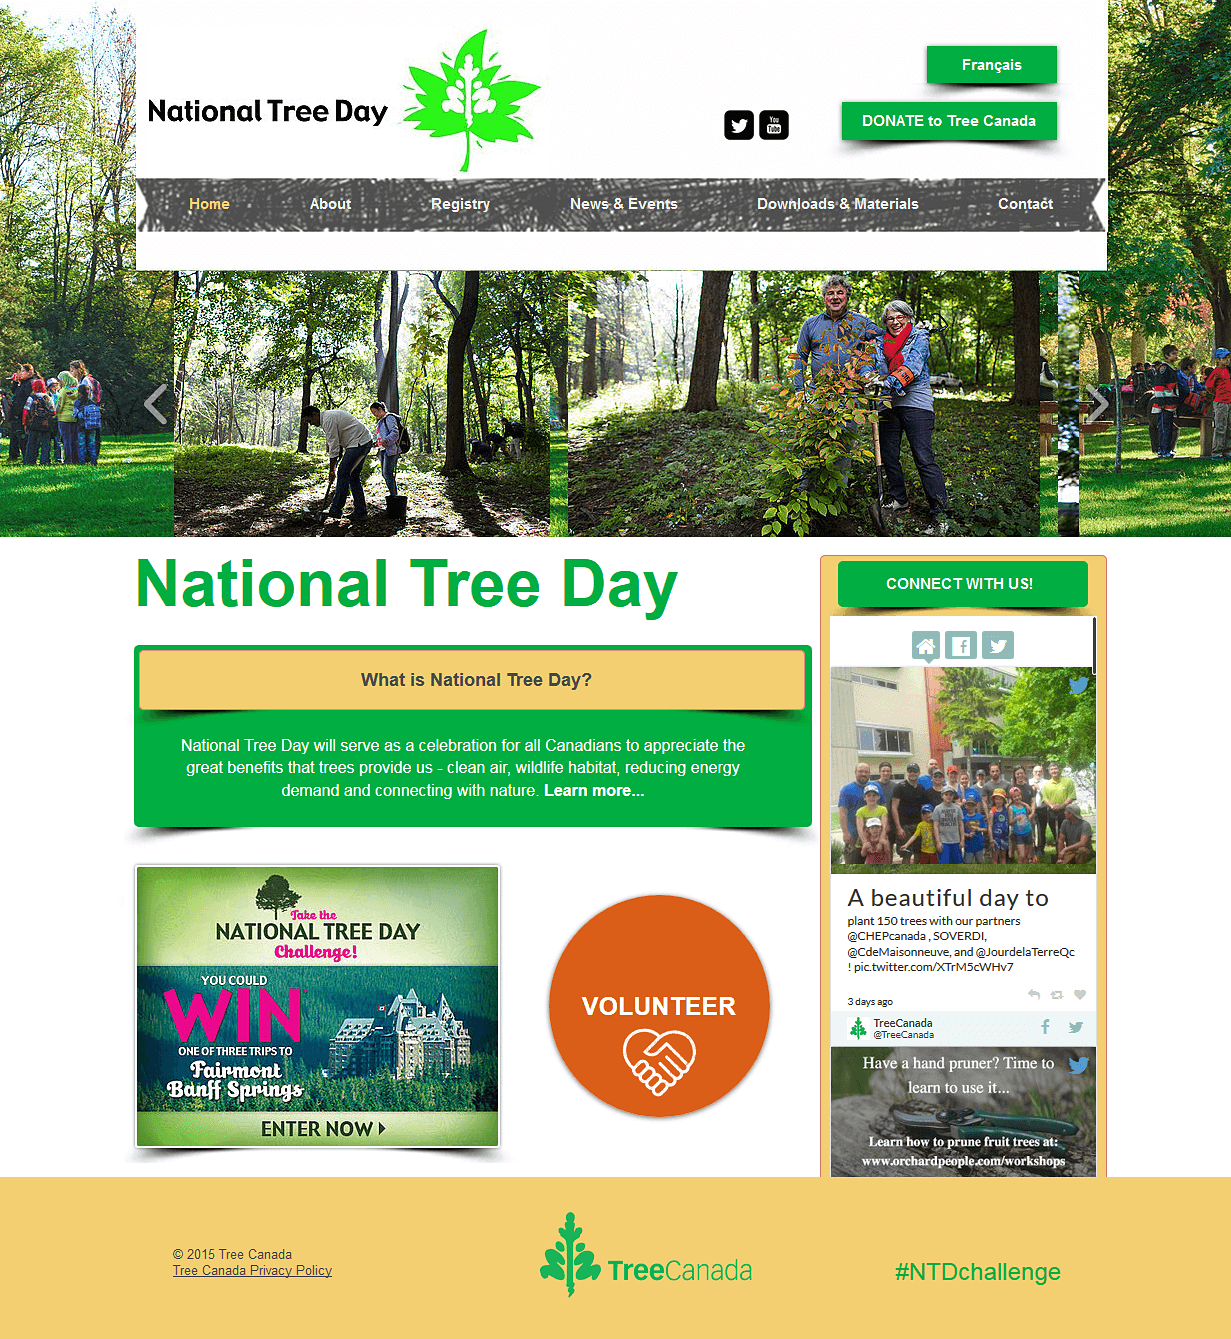 National Tree Day website